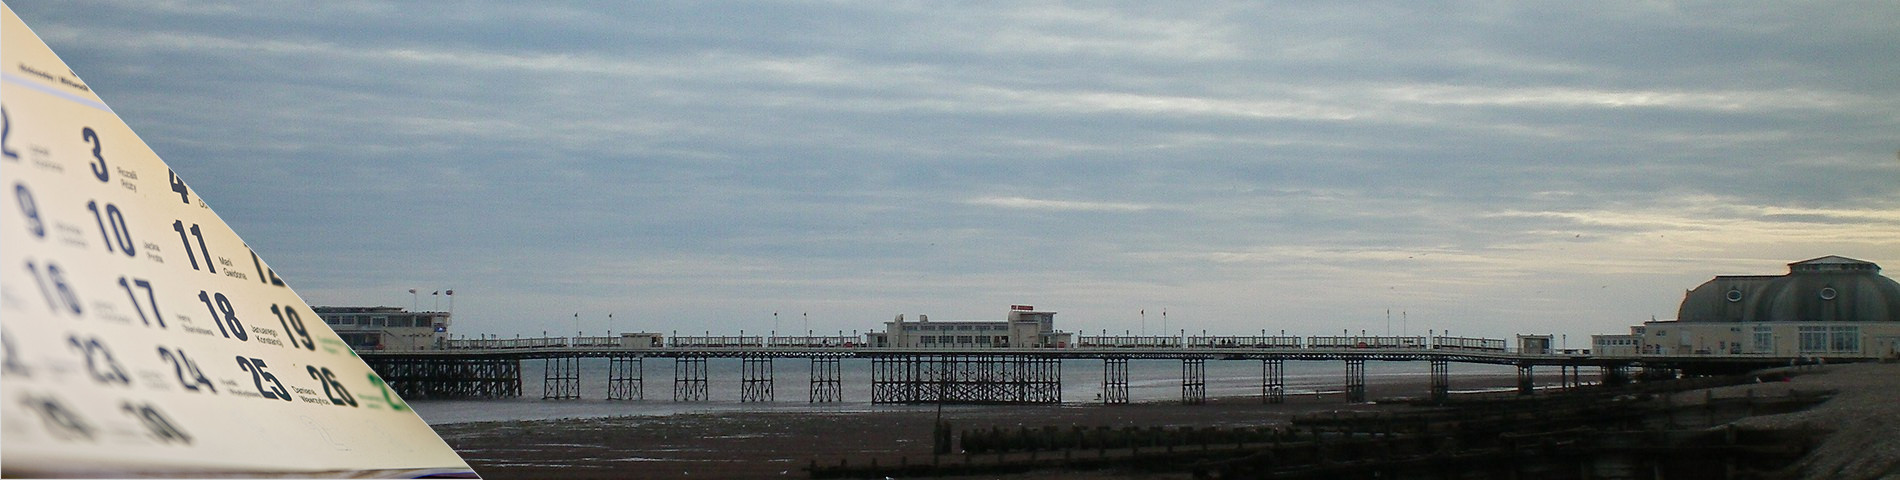 Worthing - Inglese annuale